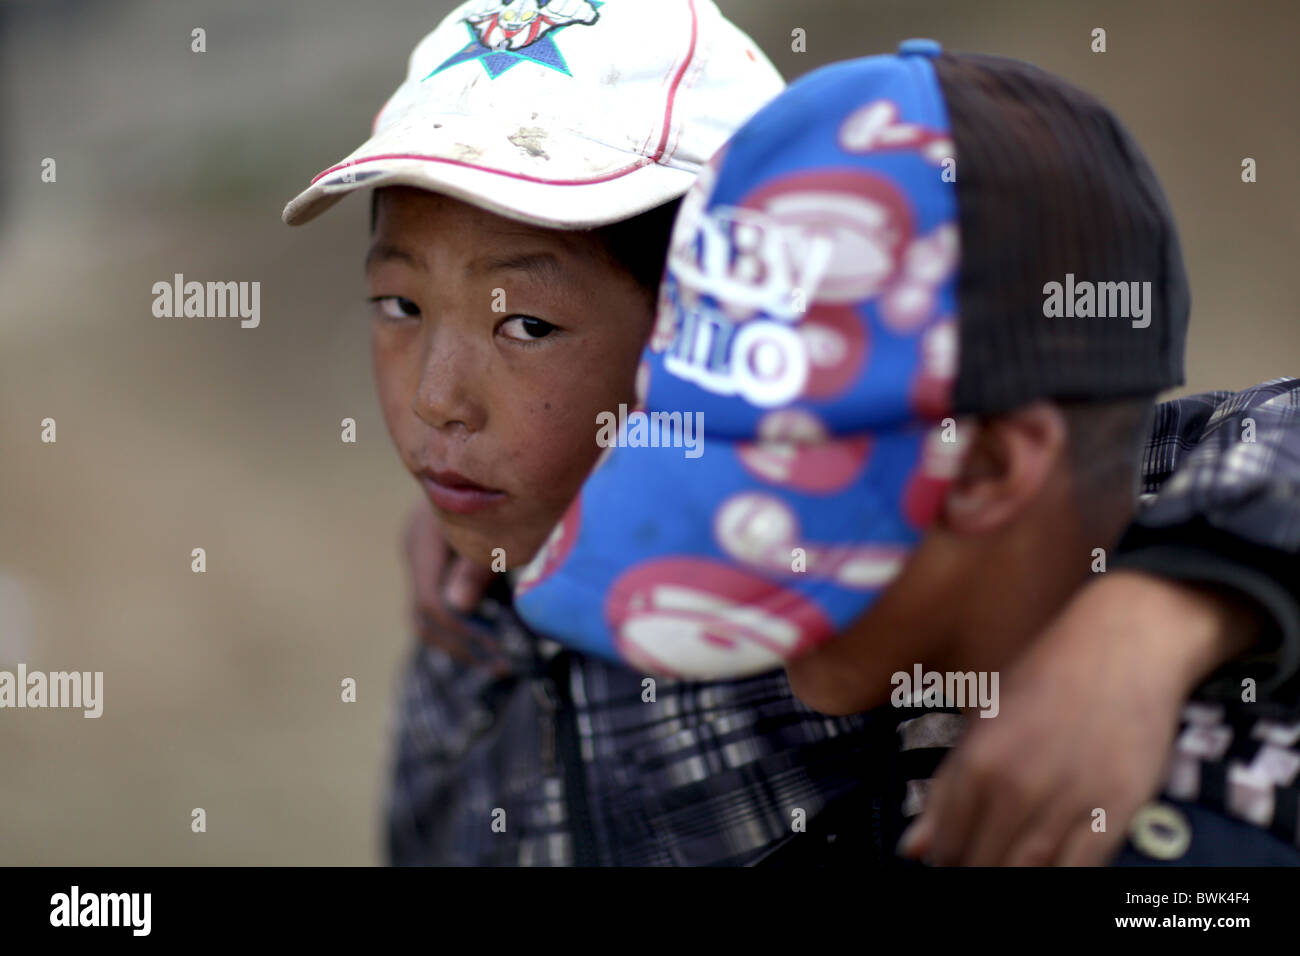 Two tibetan boys in Litang, Sichuan province, southwest China - Stock Image